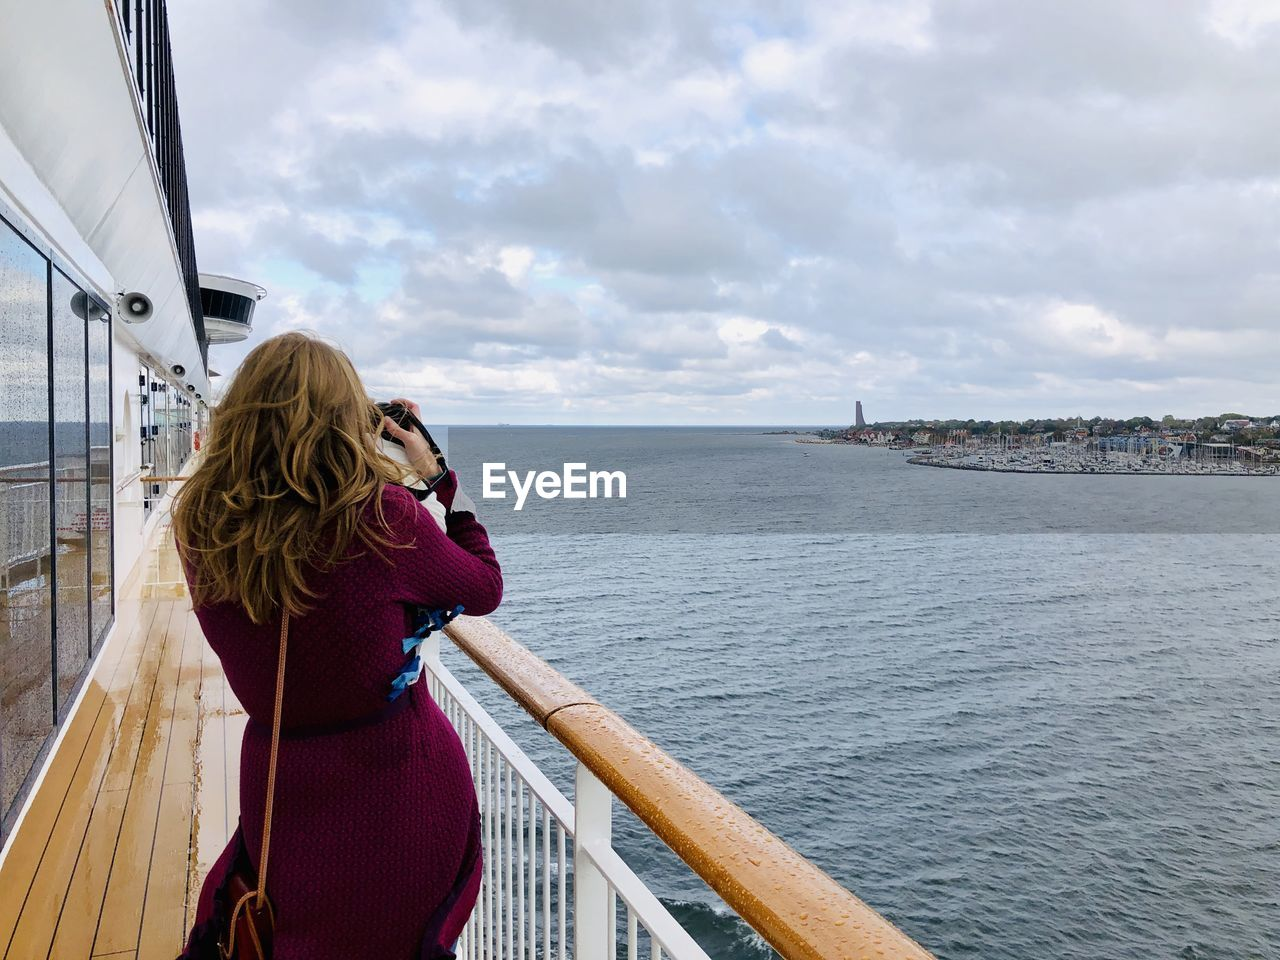 water, sky, cloud - sky, one person, real people, transportation, lifestyles, photographing, women, sea, mode of transportation, photography themes, adult, leisure activity, architecture, rear view, railing, connection, hair, wireless technology, hairstyle, outdoors